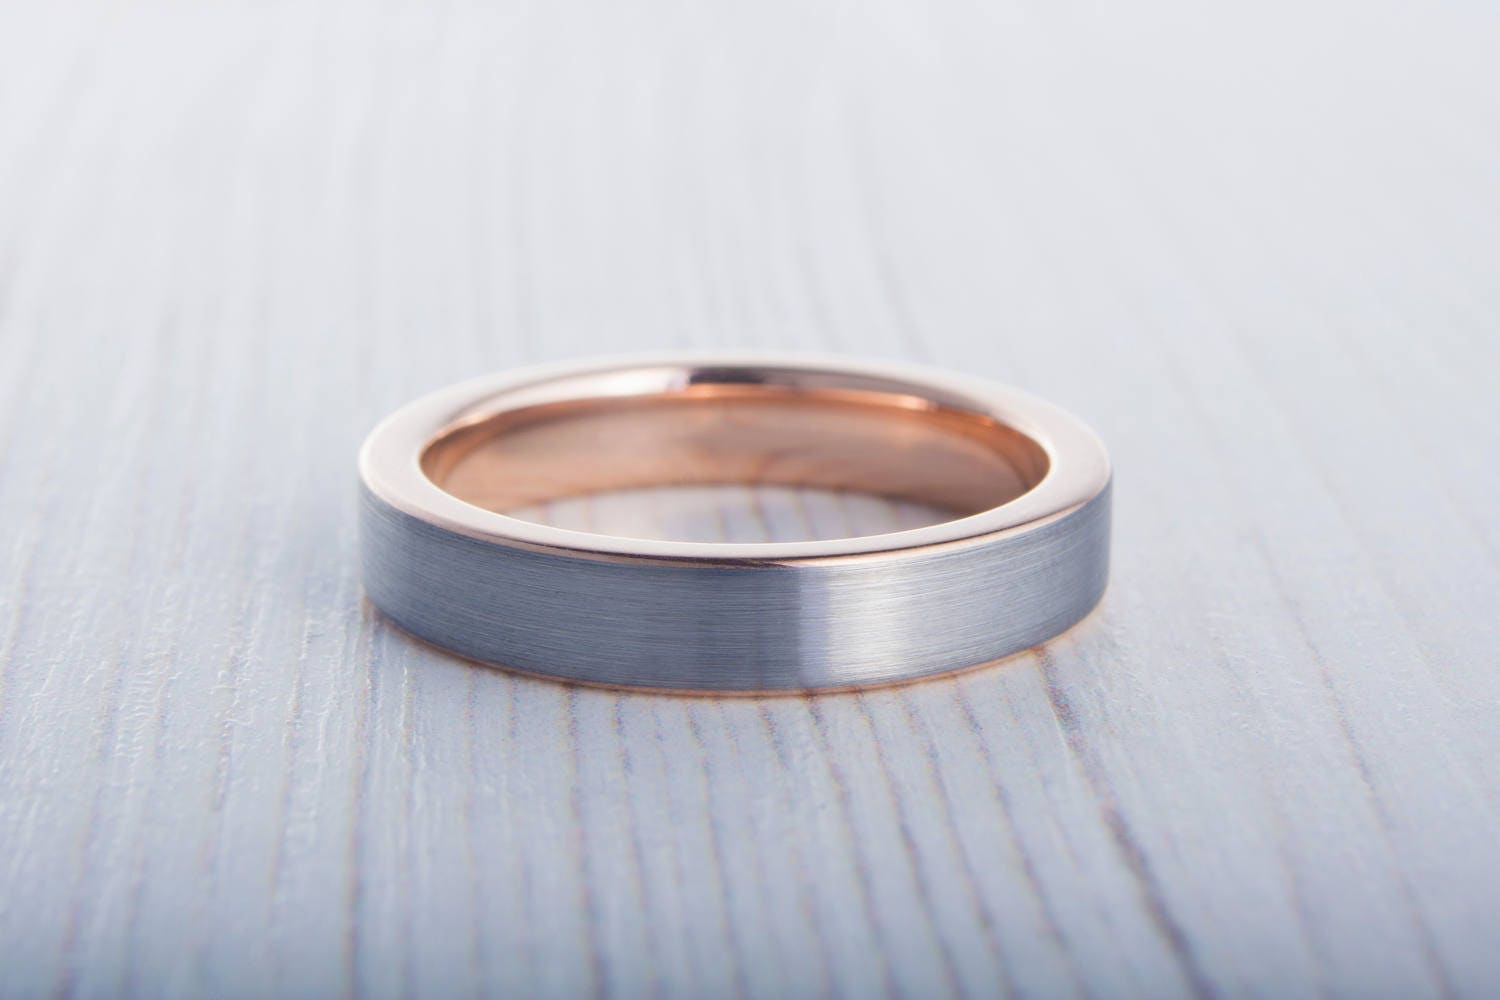 4mm 14K Rose Gold and Titanium Wedding ring band for men and woman